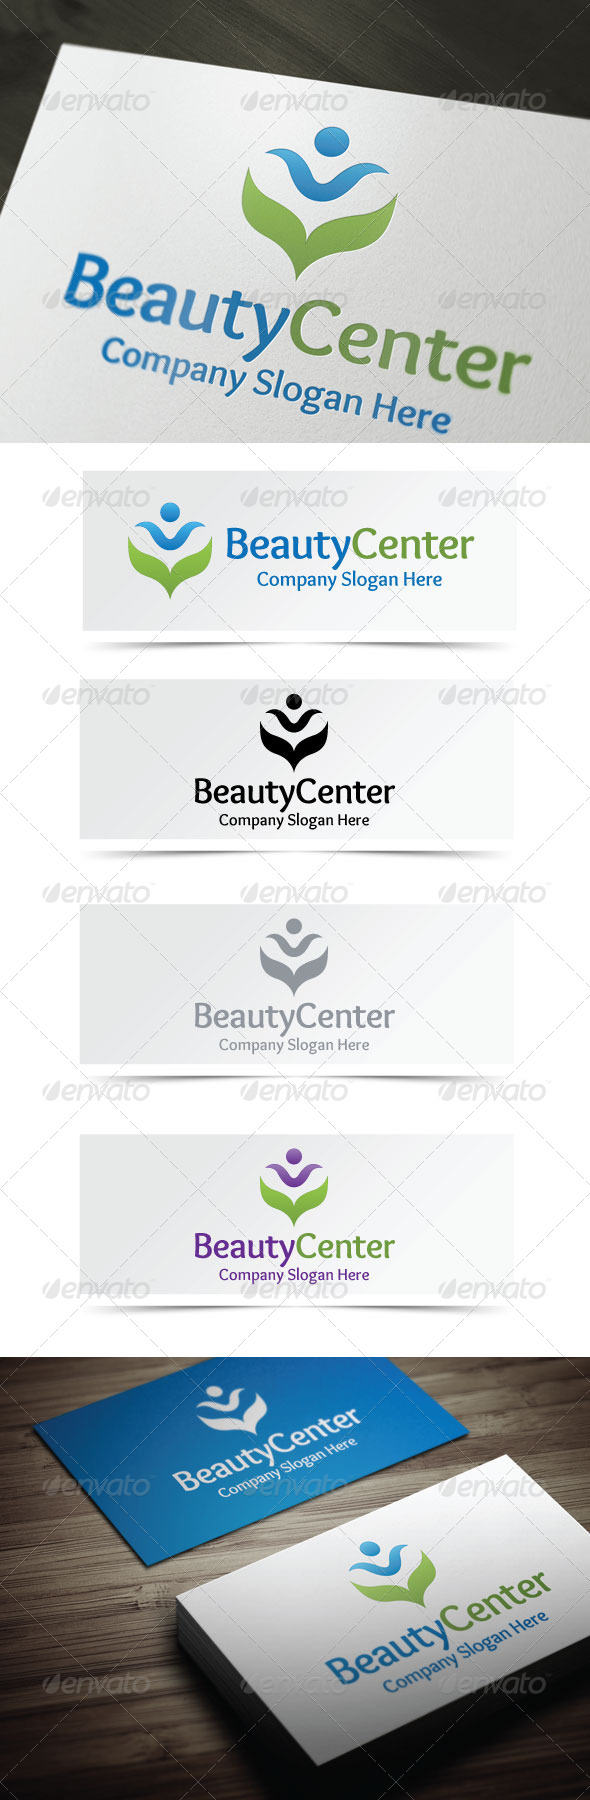 GraphicRiver Beauty Center 4105969